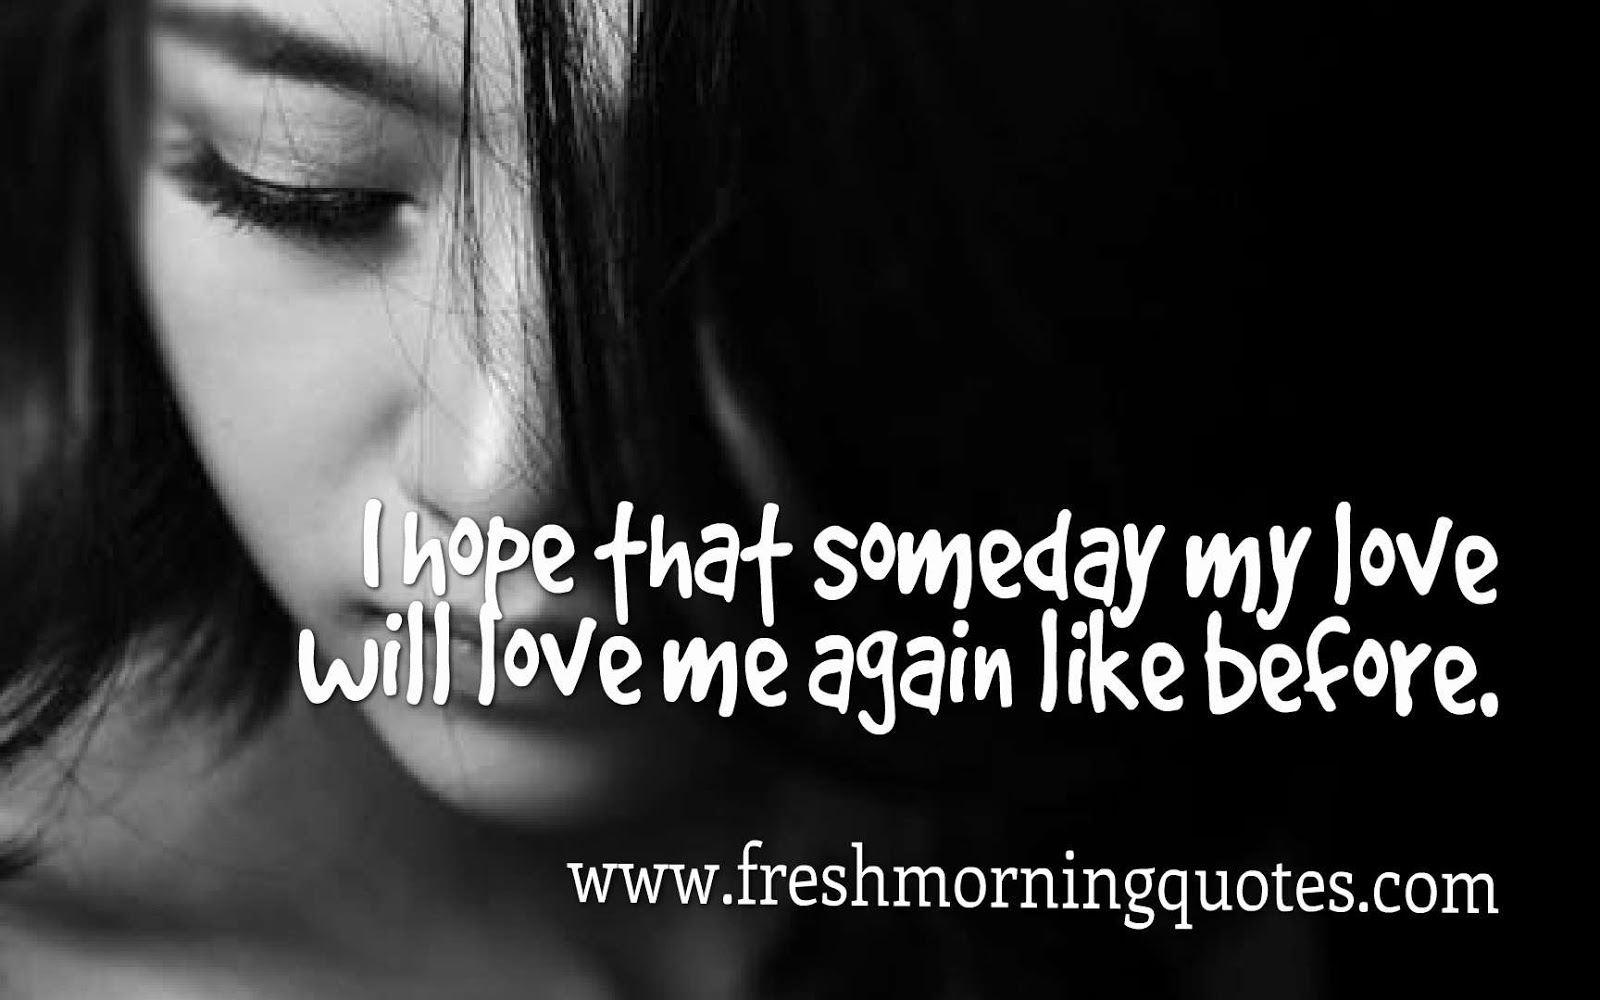 i hope for someday he will again love me